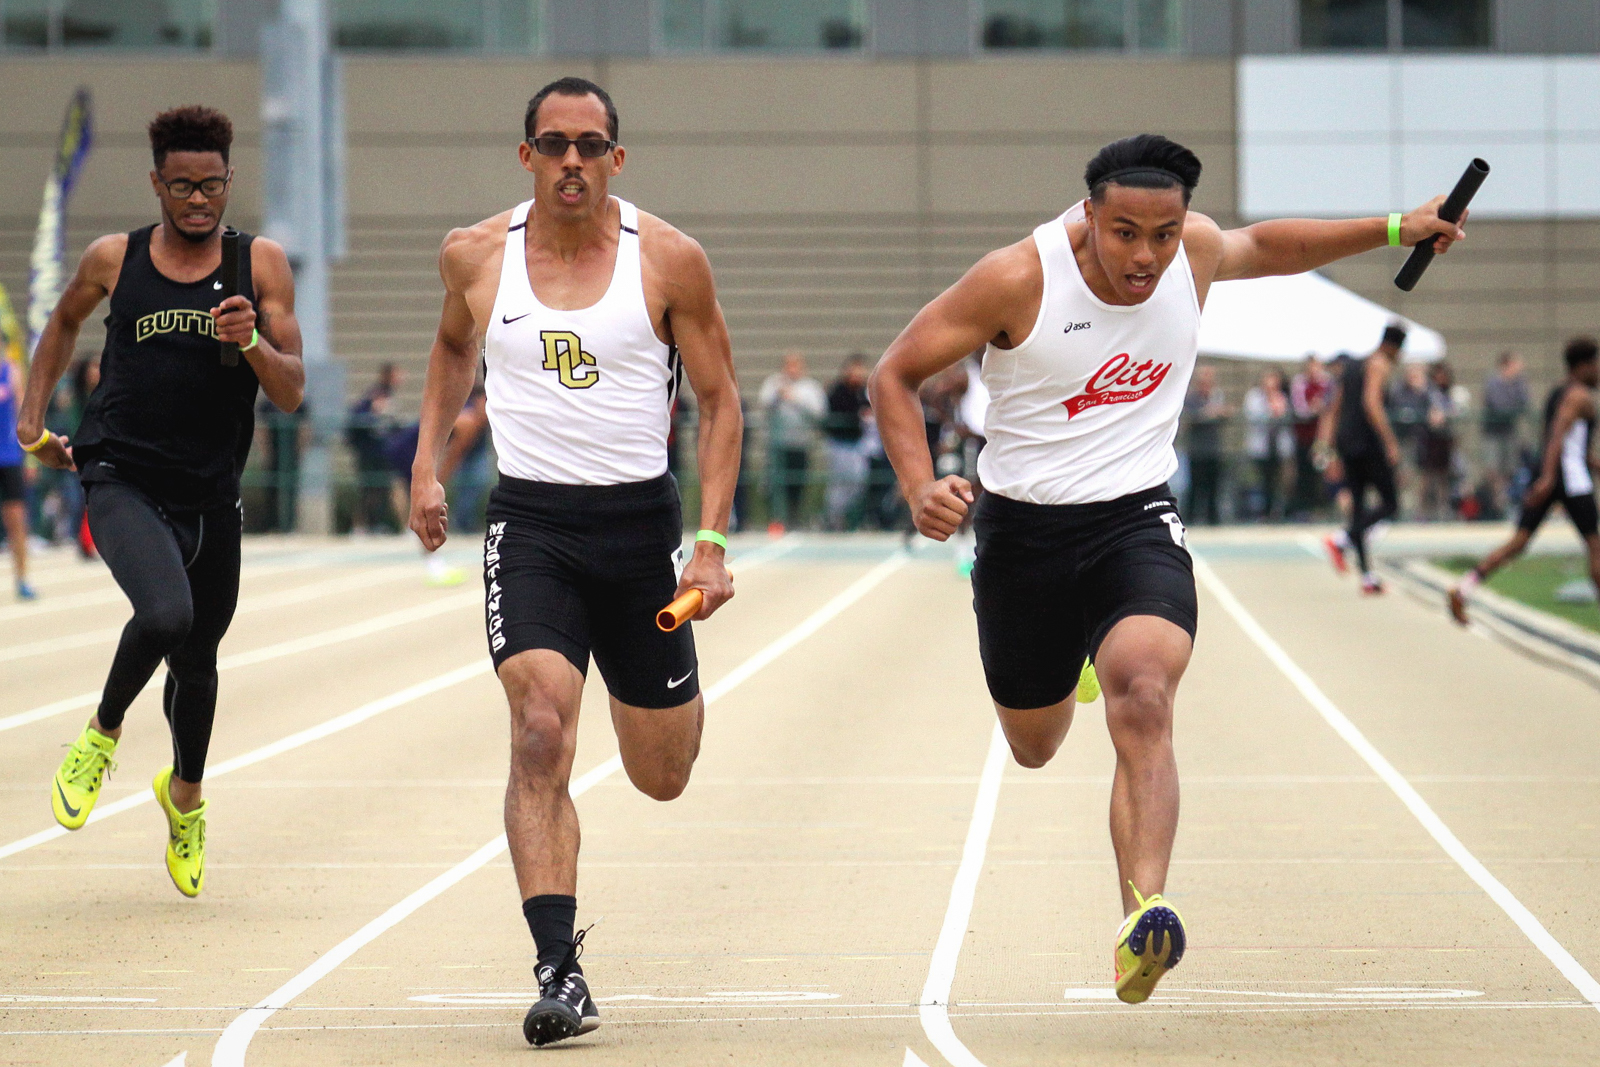 City College won both men's 4x100m and 4x400m relays at the Johnny Mathis Invitational held at SF State on February 24-25. (Photo by Craig Mandall)